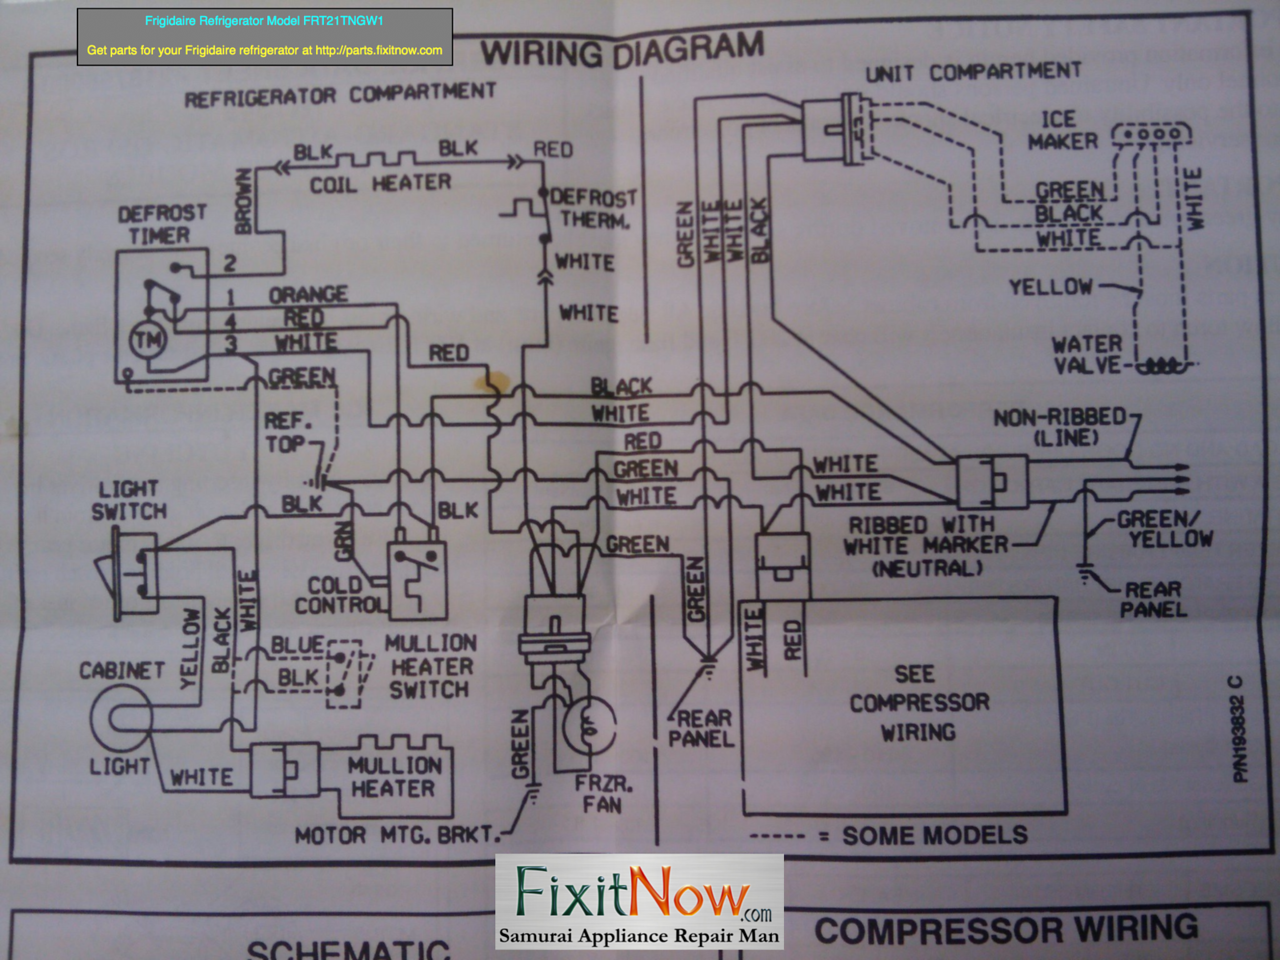 Enjoyable Frigidaire Wire Diagram Wiring Diagram Wiring Cloud Strefoxcilixyz